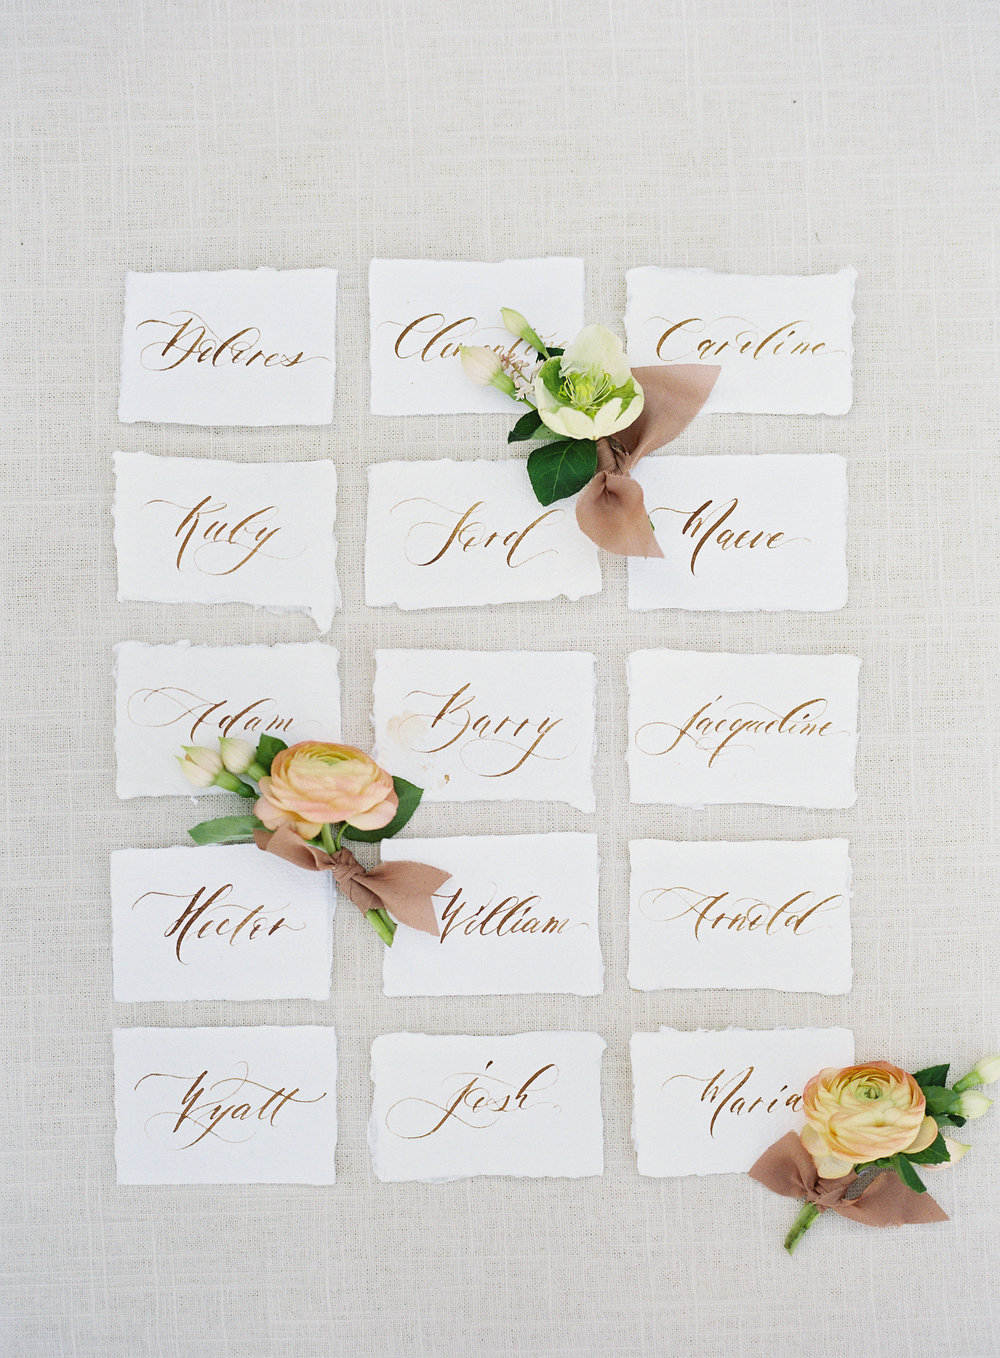 www.santabarbarawedding.com | Kestrel Park | Heather Payne | Lacy Geary | Escort Cards